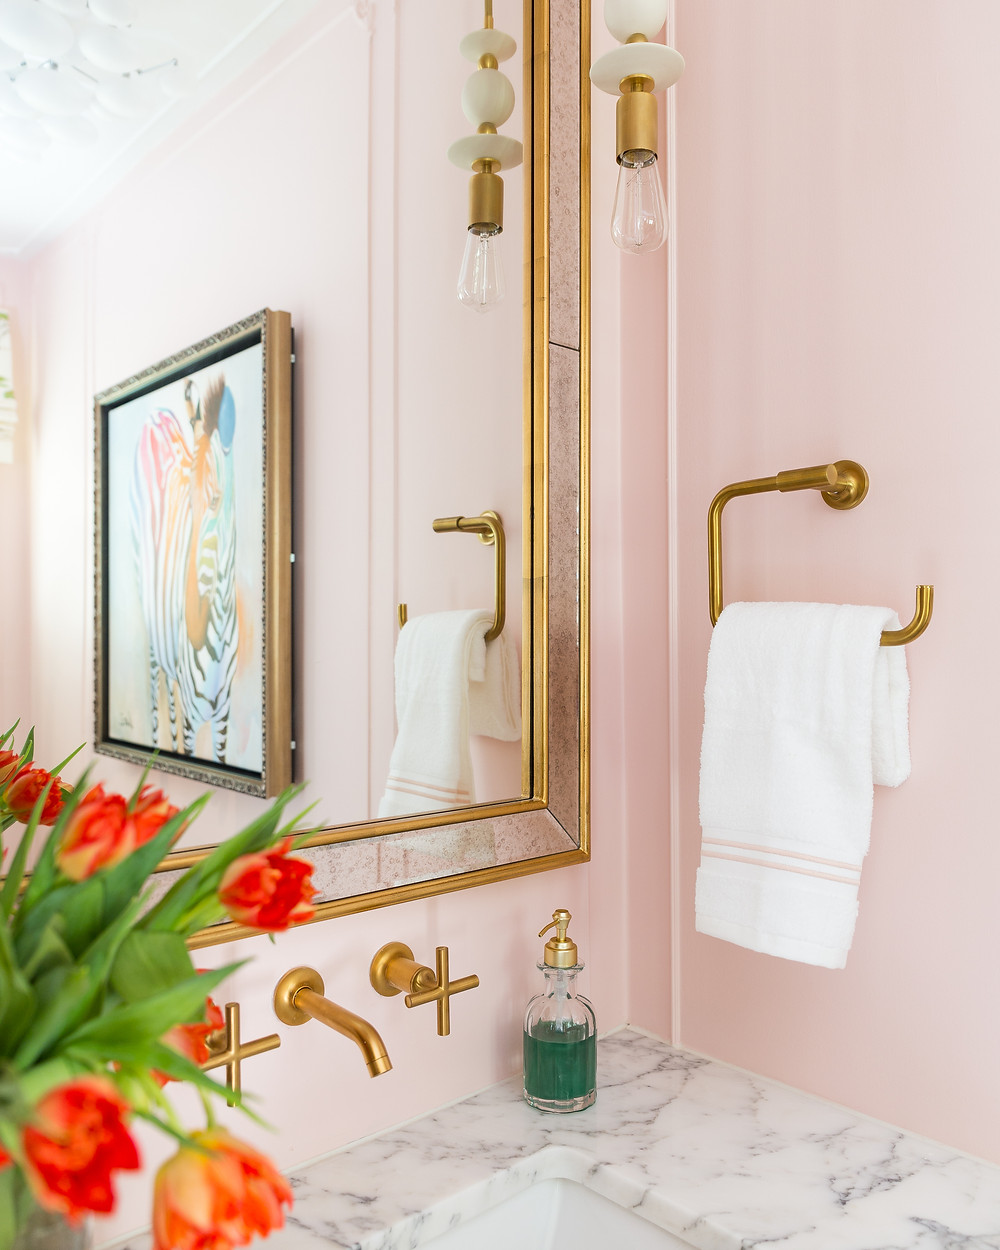 blush walls in powder room with orange tulips